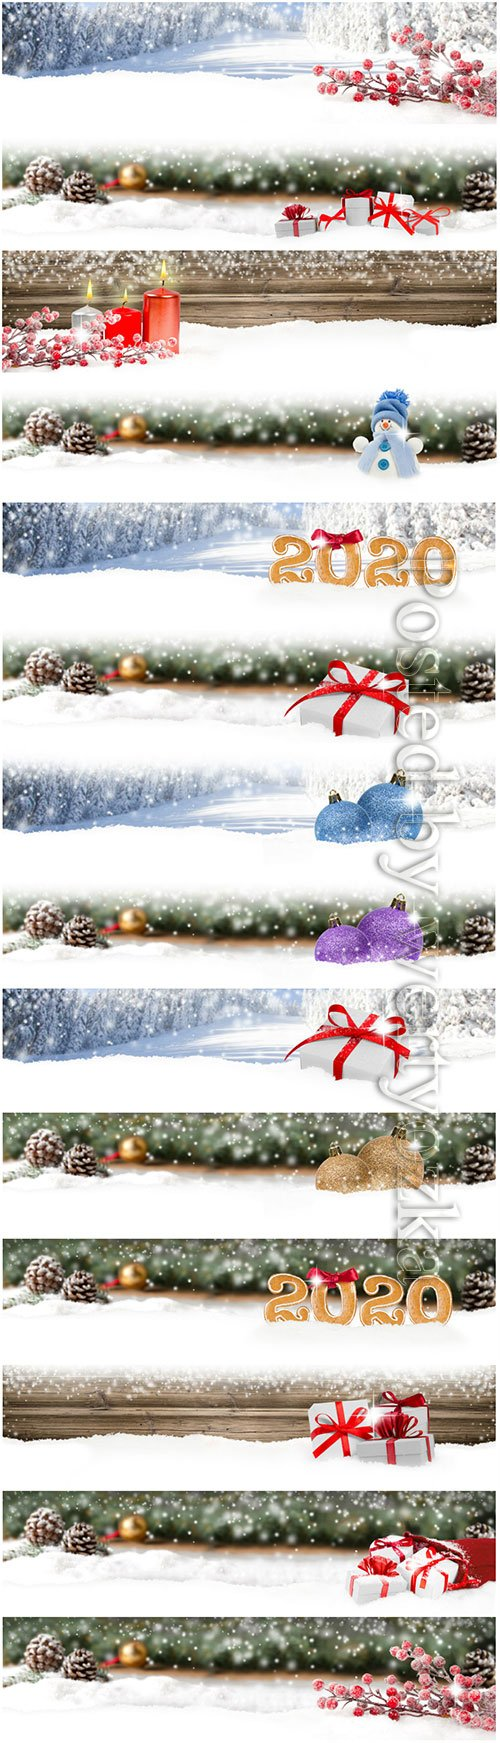 Christmas banners with fir branches, candles and Christmas decorations